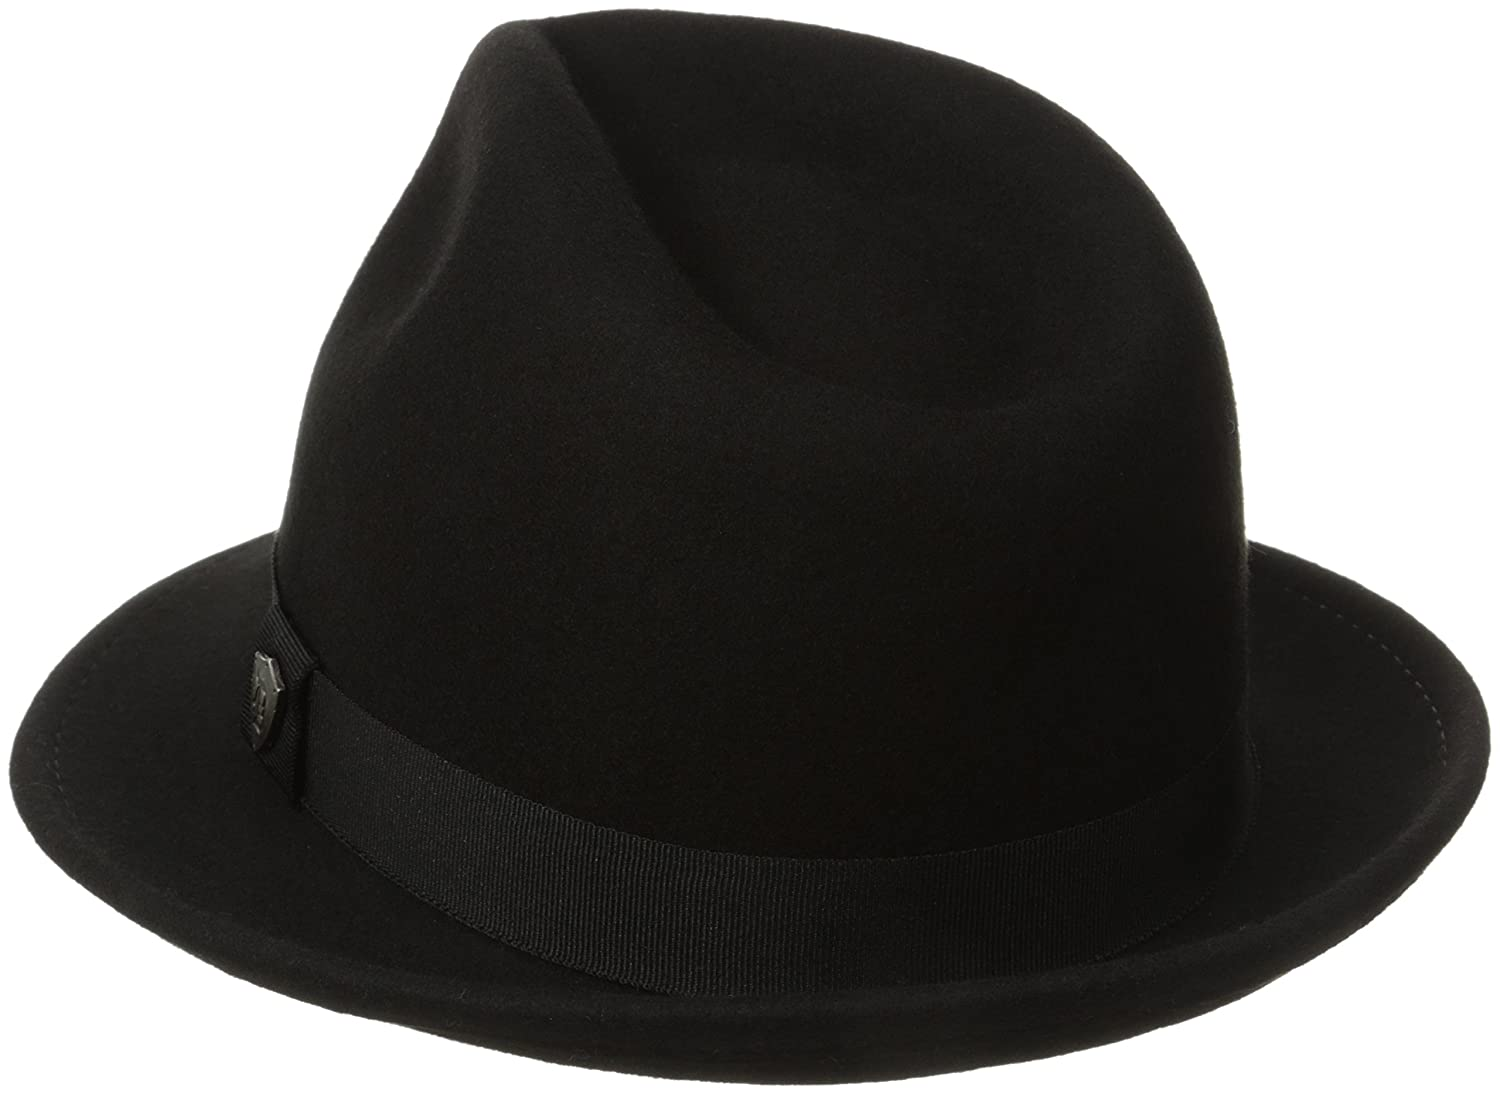 1940s Mens Hats | Fedora, Homburg, Pork Pie Hats Dorfman Wool Felt Hat $44.95 AT vintagedancer.com